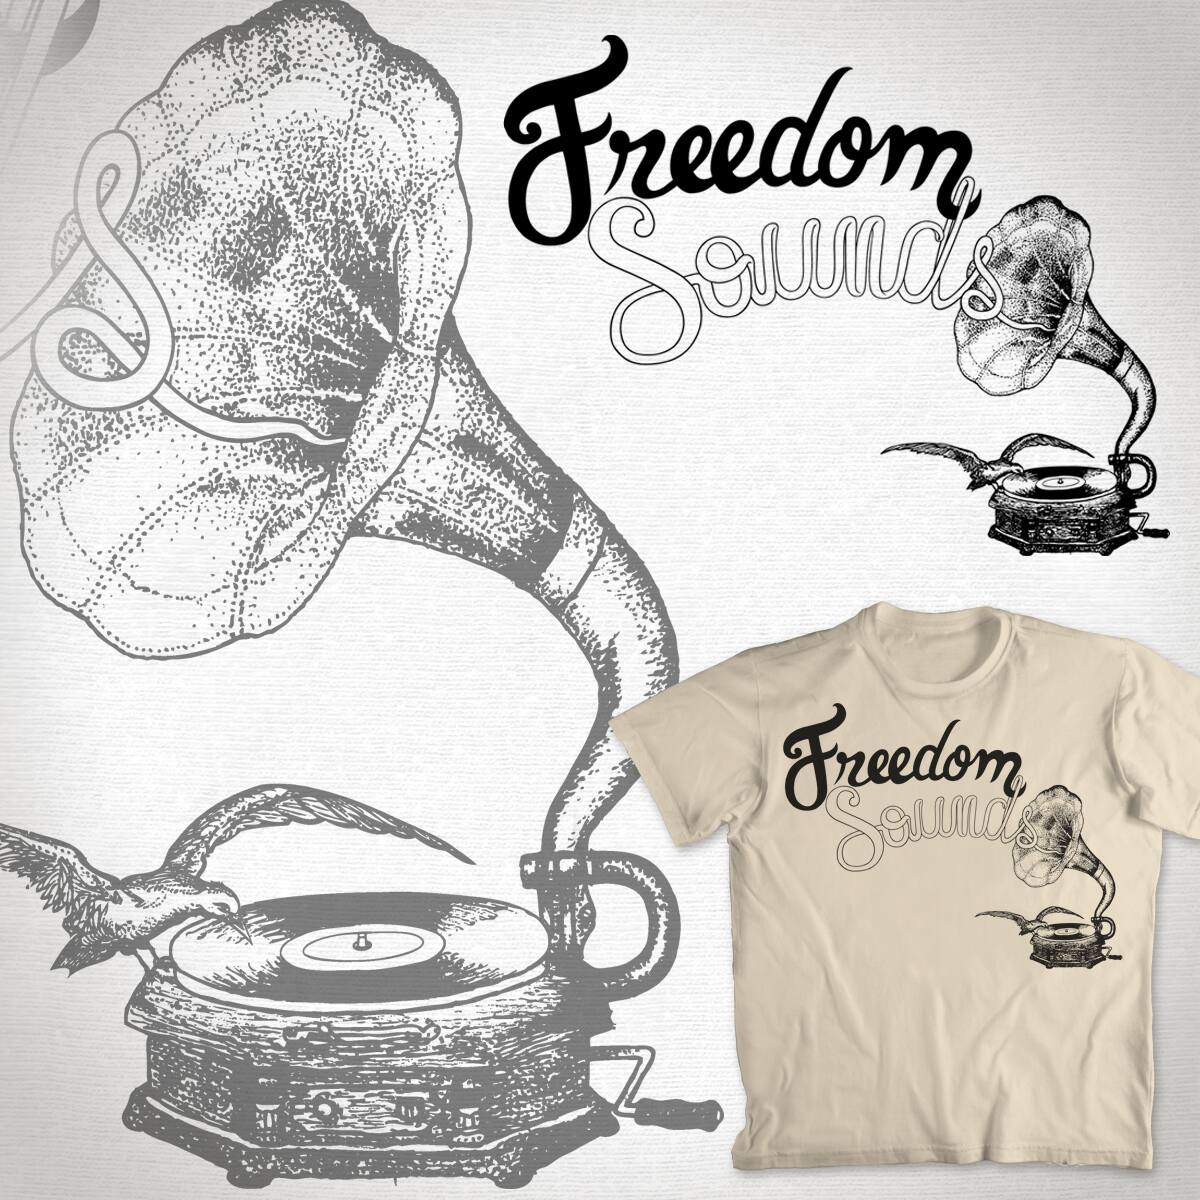 Freedom Sounds by paulomonnerat on Threadless